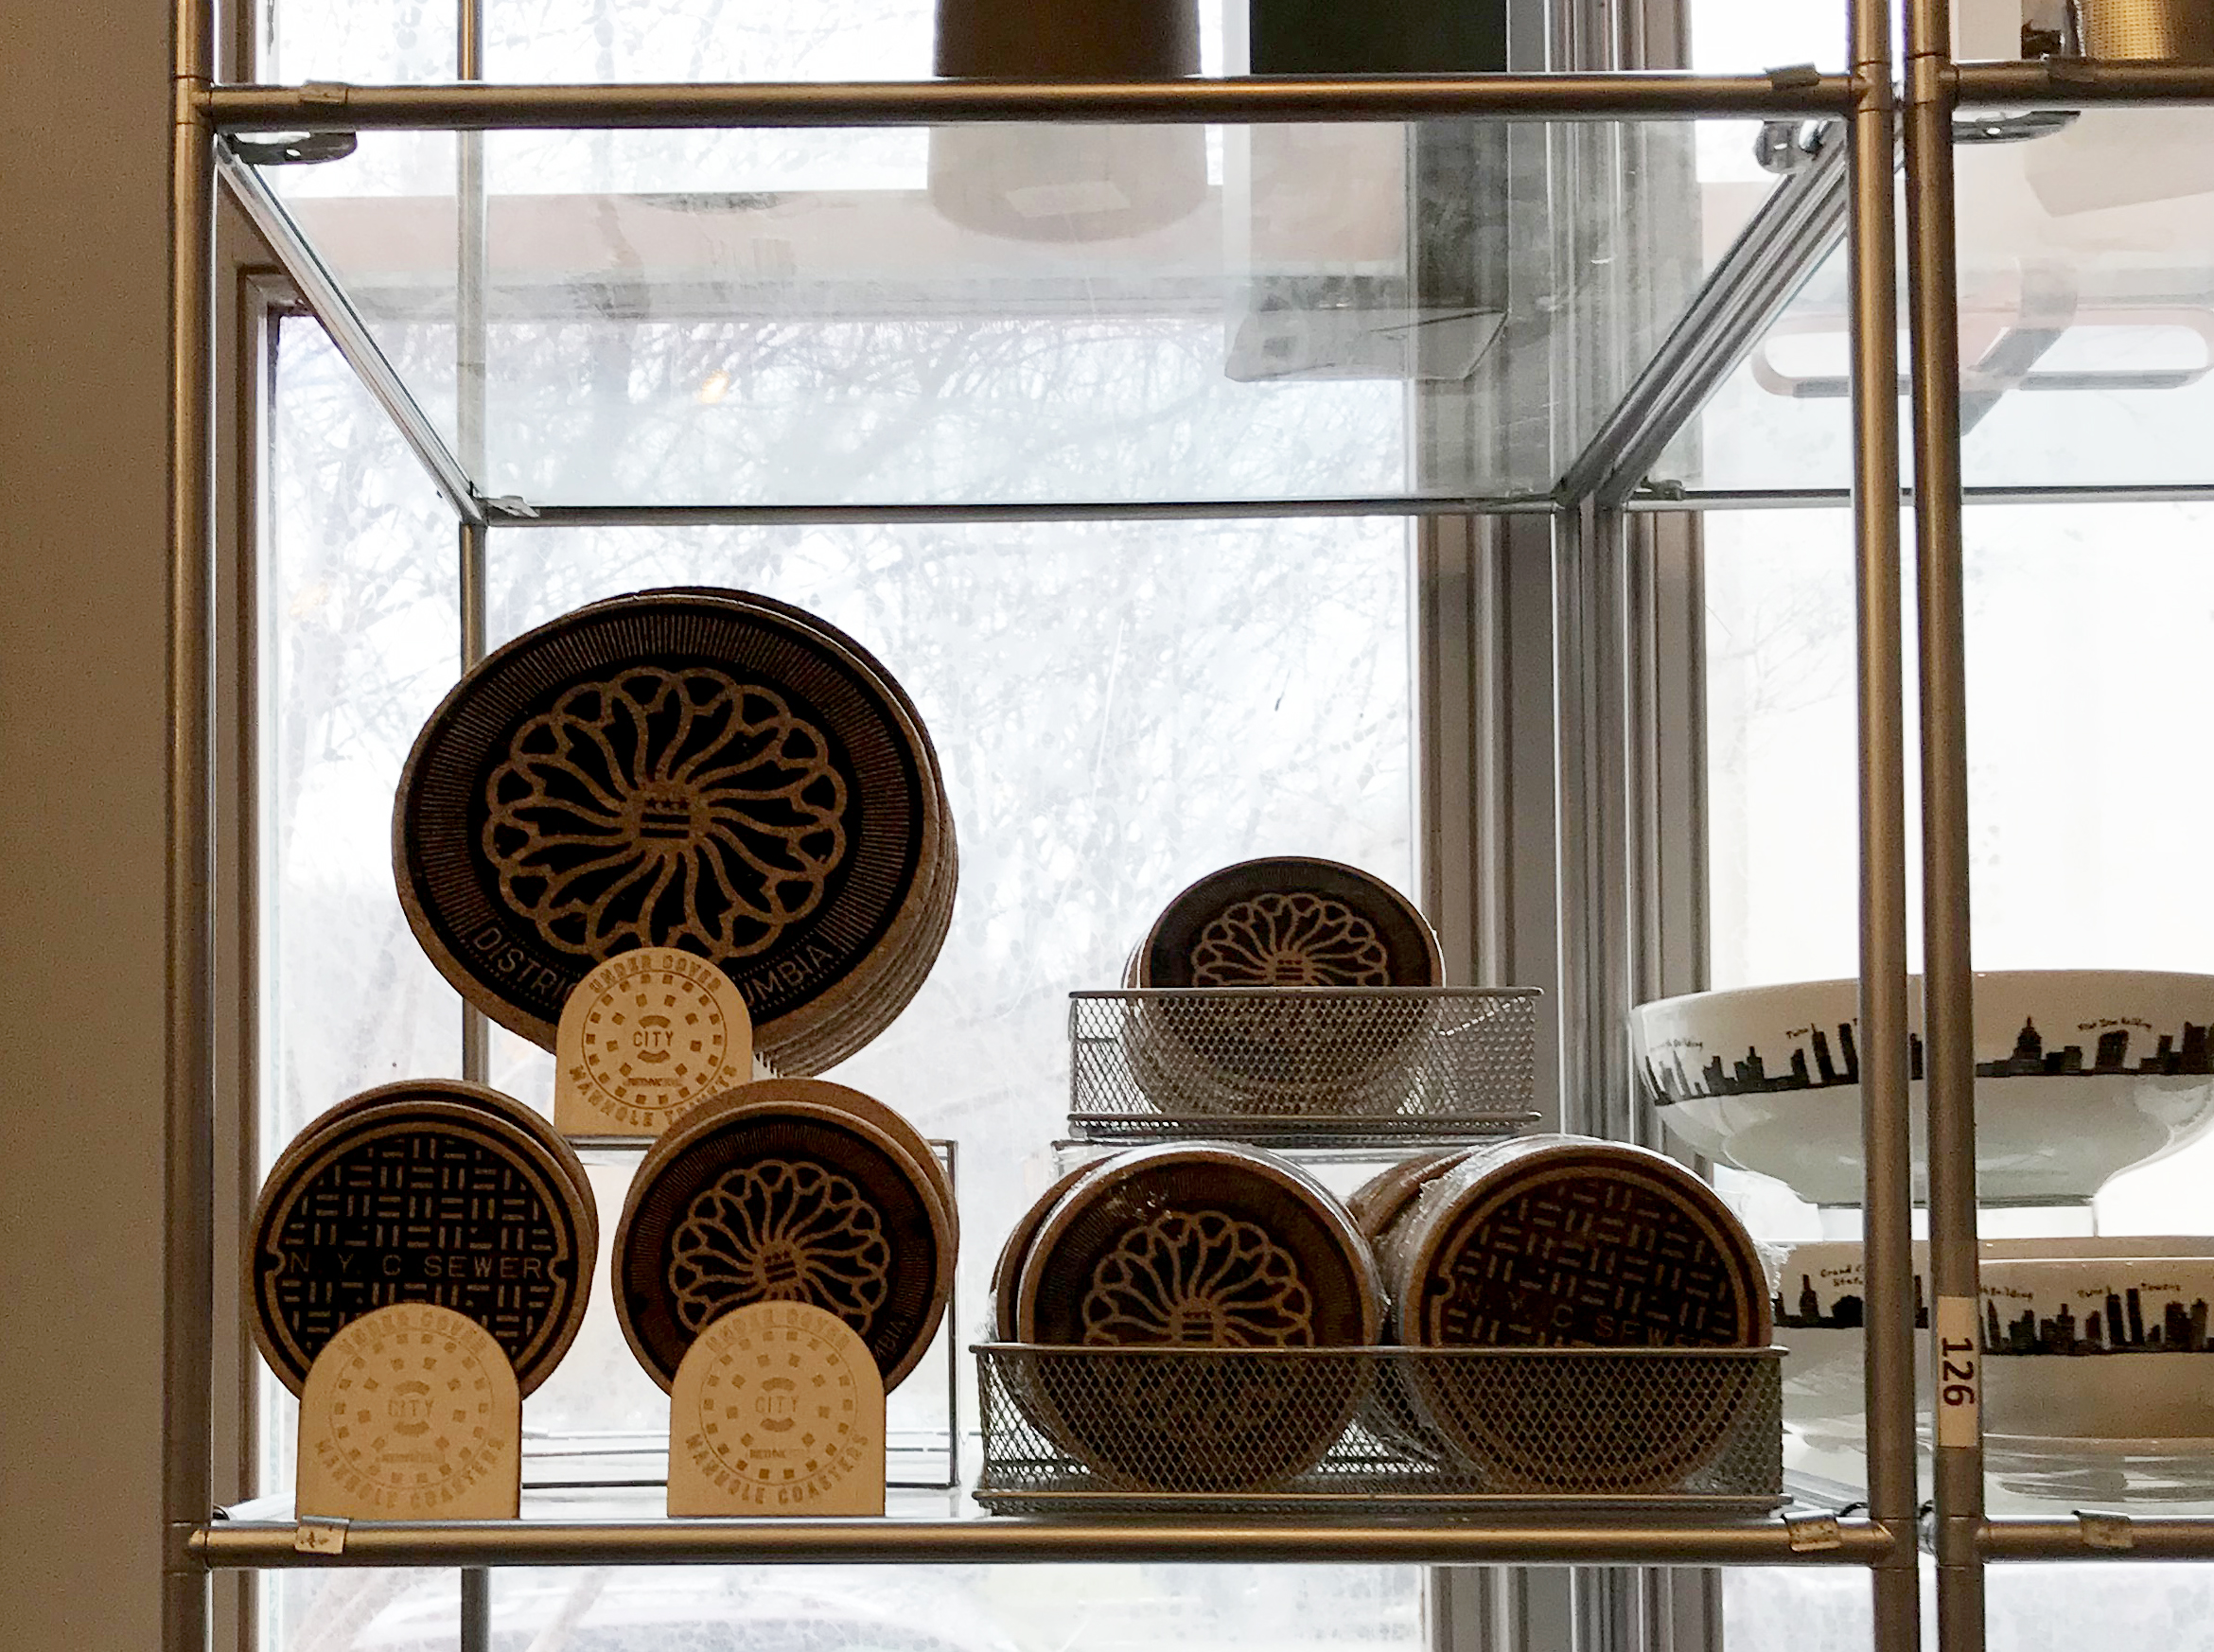 DC Display and trivets now available at the national building museum in washington dc - Take Amtrak down the Northeast Corridor and visit the NBM. The building is one of the four great rooms of DC. Can you name the other three?